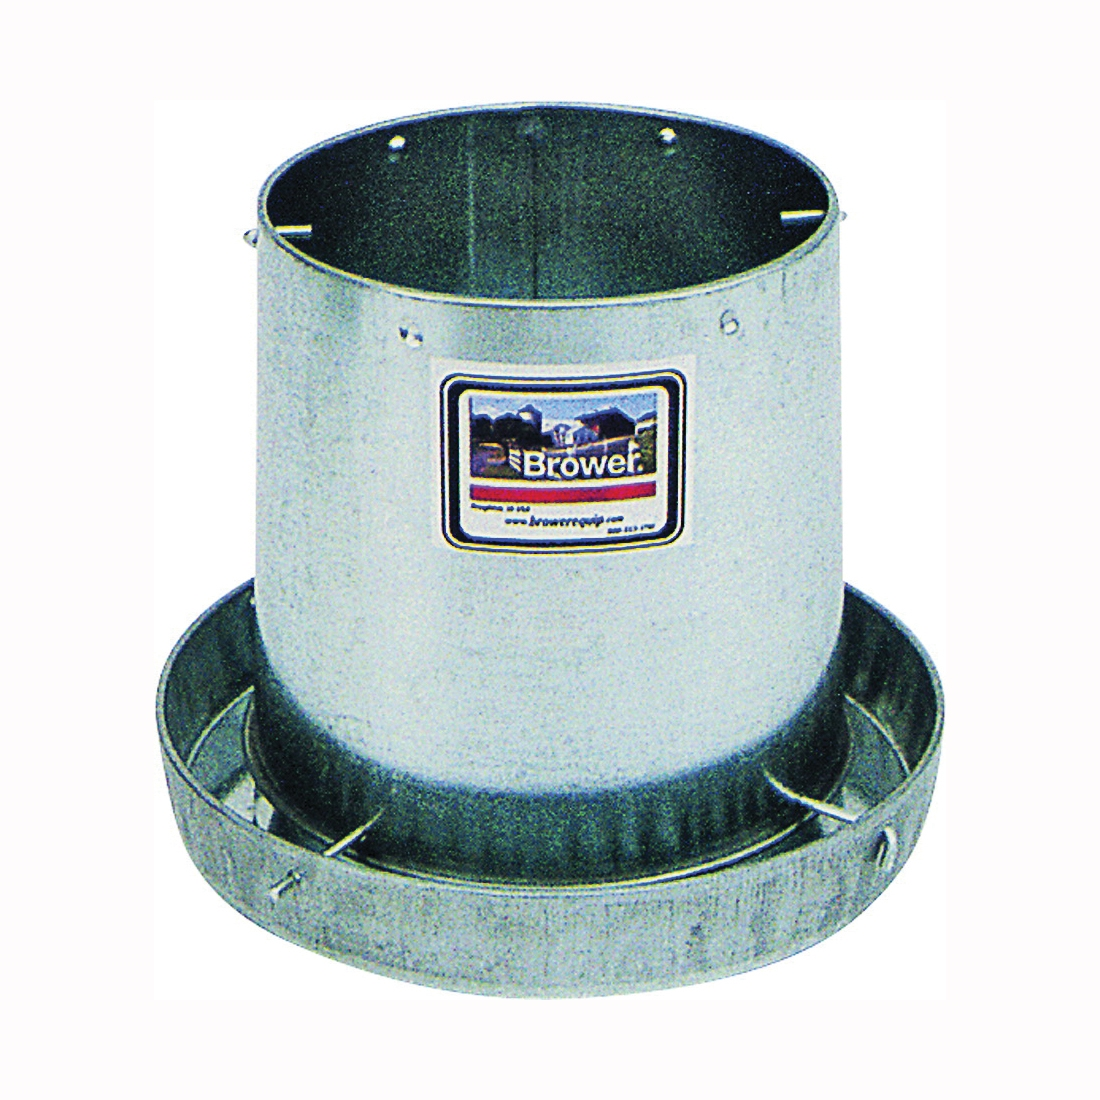 Picture of FORTEX-FORTIFLEX GLV12H Hanging Feeder, 12 lb Capacity, Steel, Galvanized